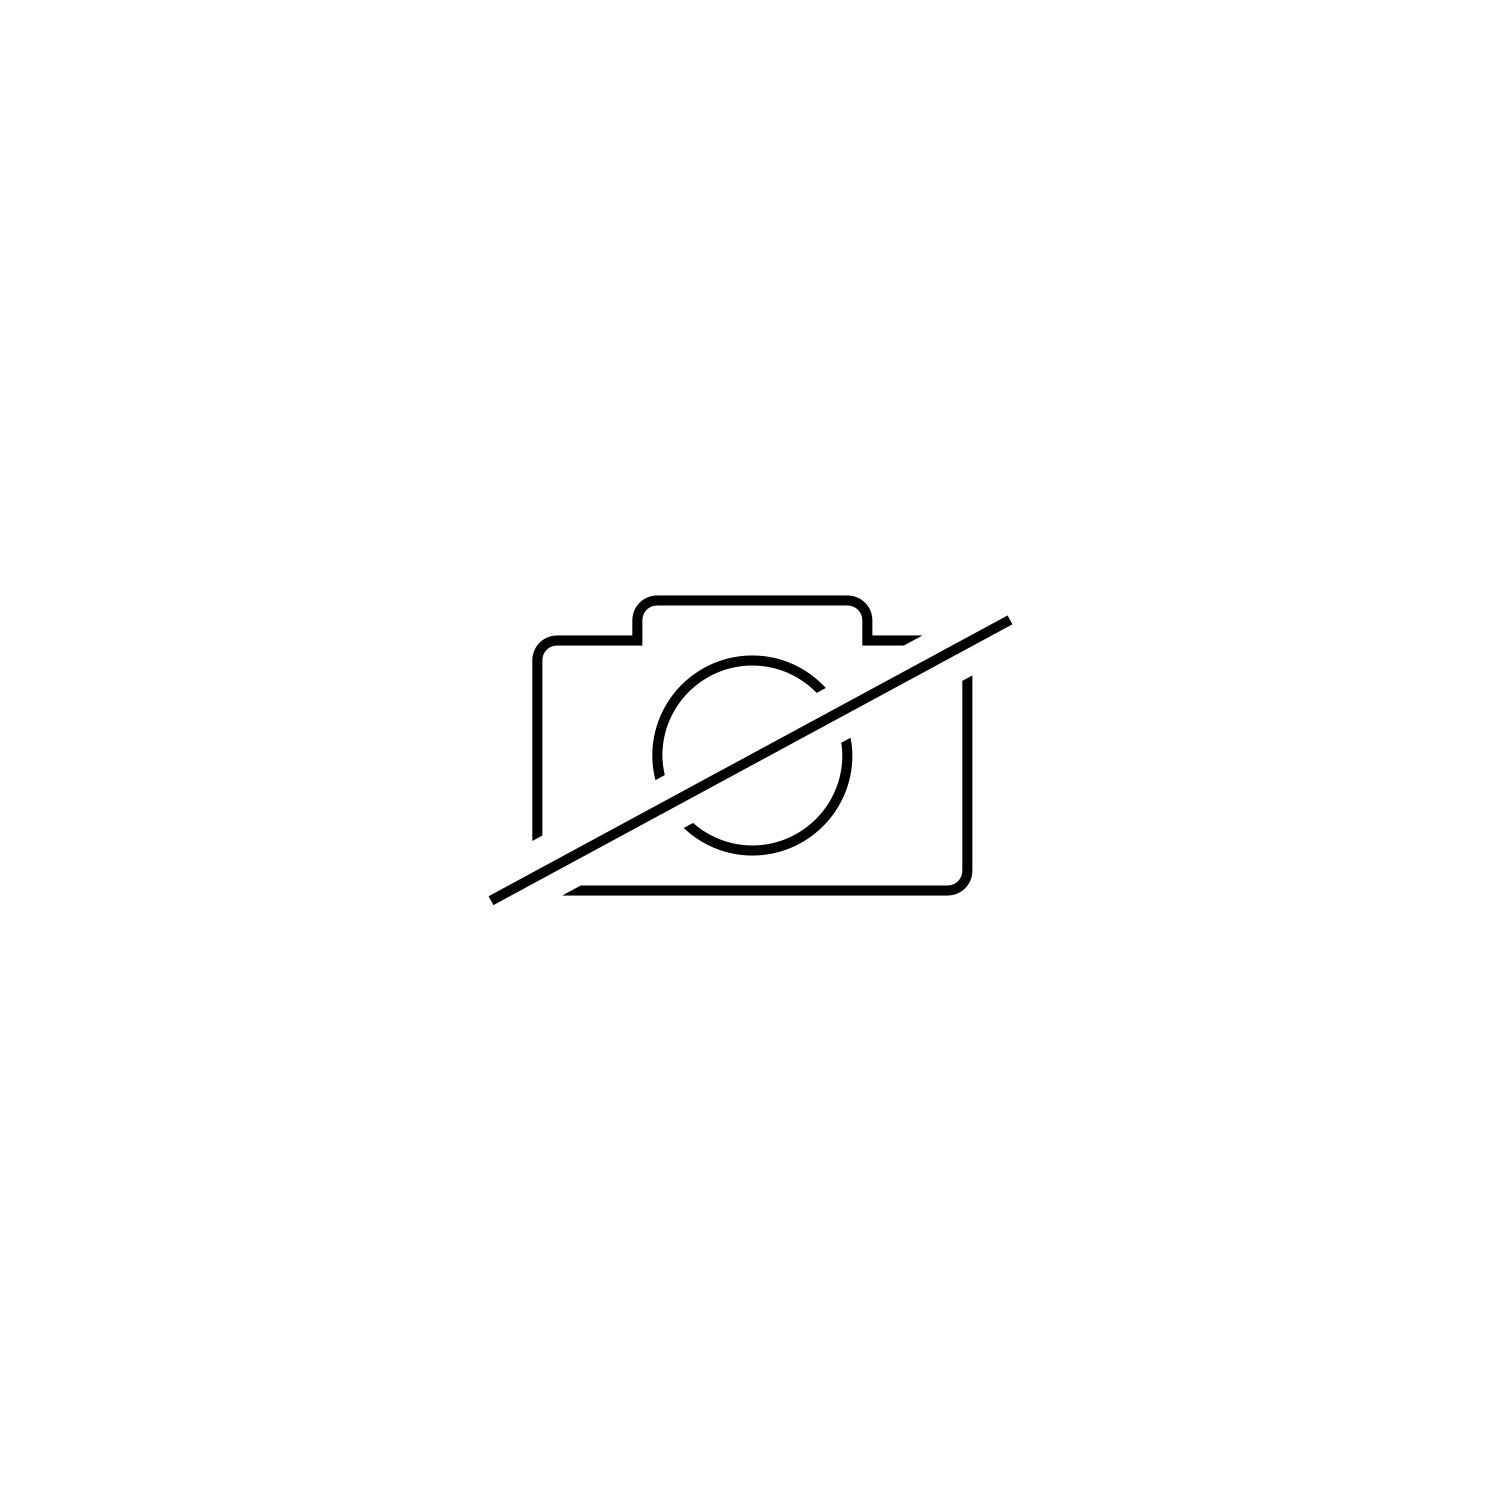 Audi Lunative Steppjacke, Damen, grau, XL